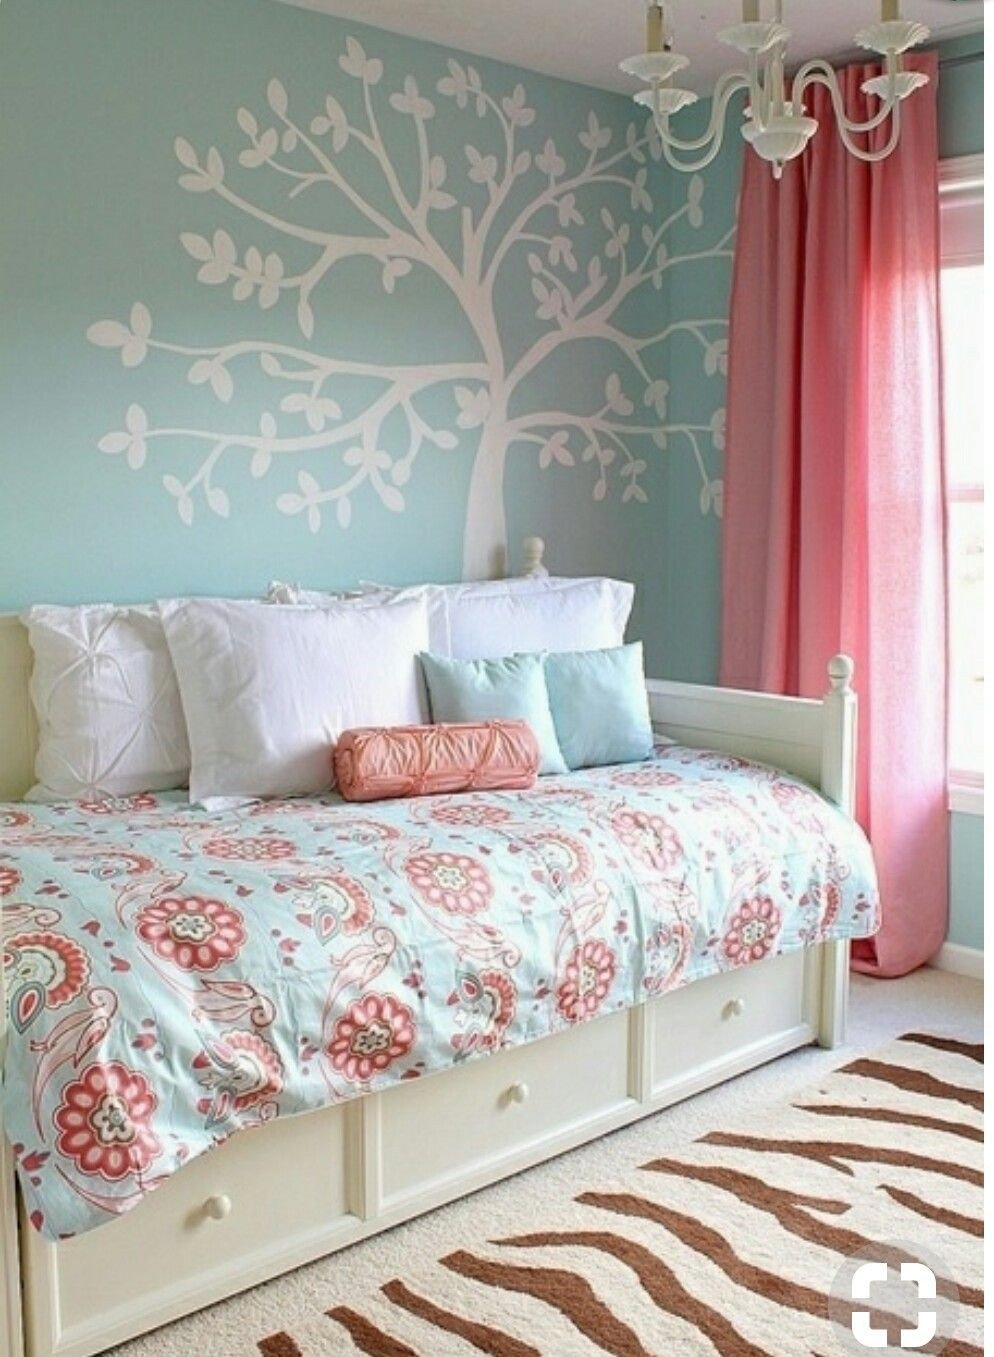 Tiffany Blue Bedroom Ideas Inspirational Pin by Loretta Thompson On Grandkids Bedroom